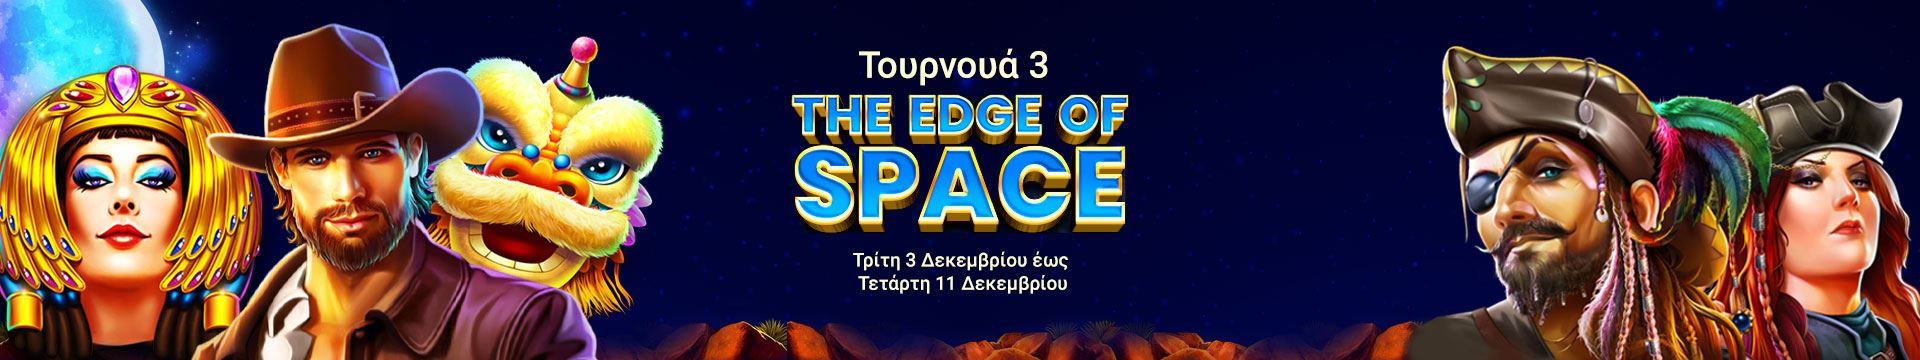 The_Edge_of_Space_Tournament_3